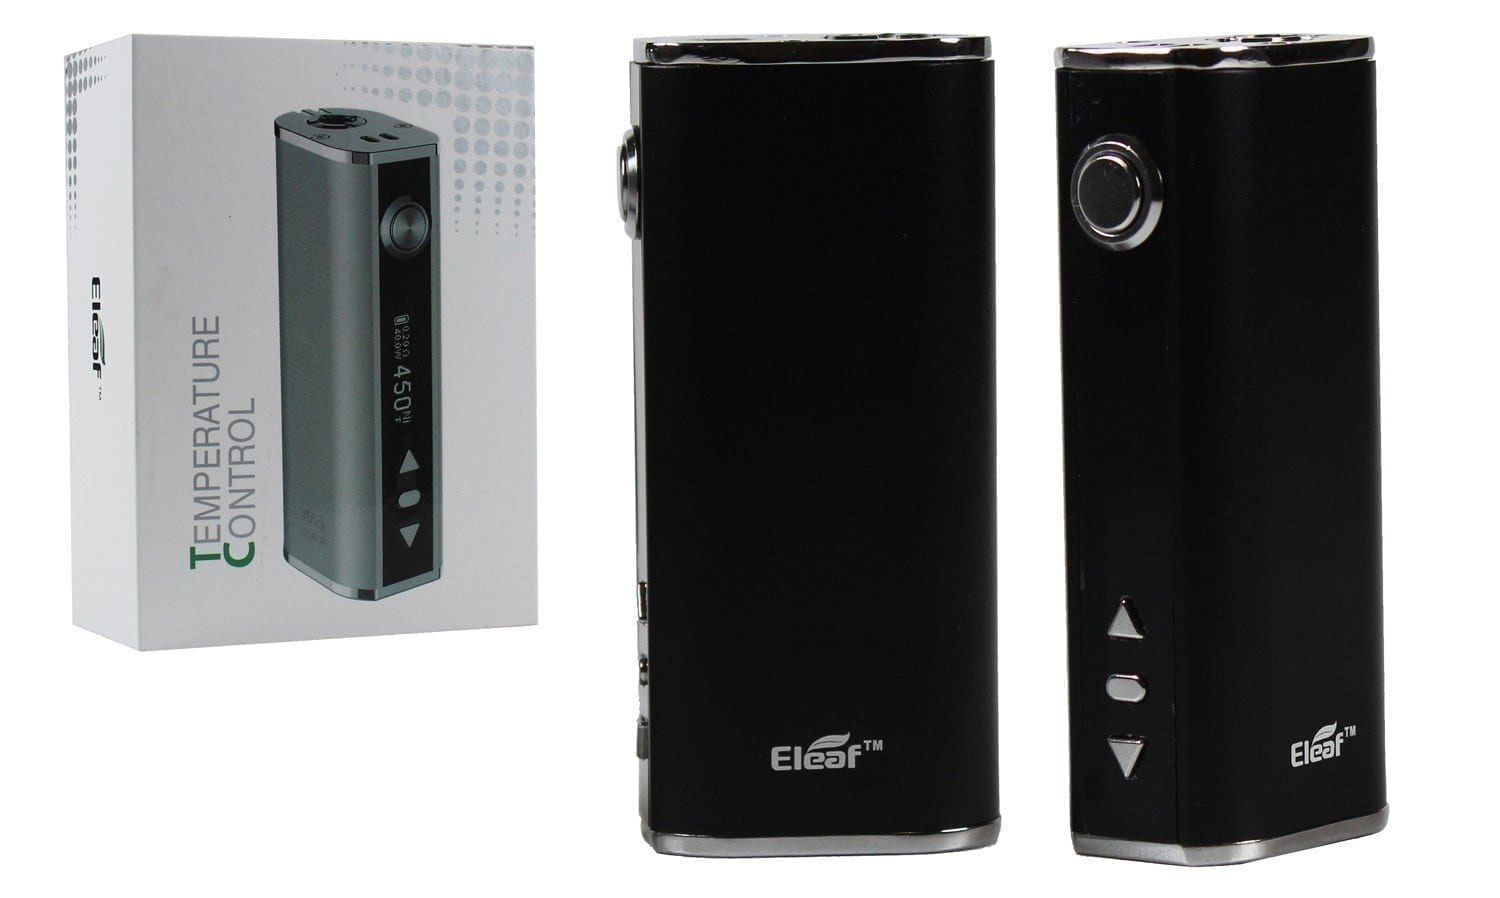 Eleaf iStick 40w - Black 2600mah Battery